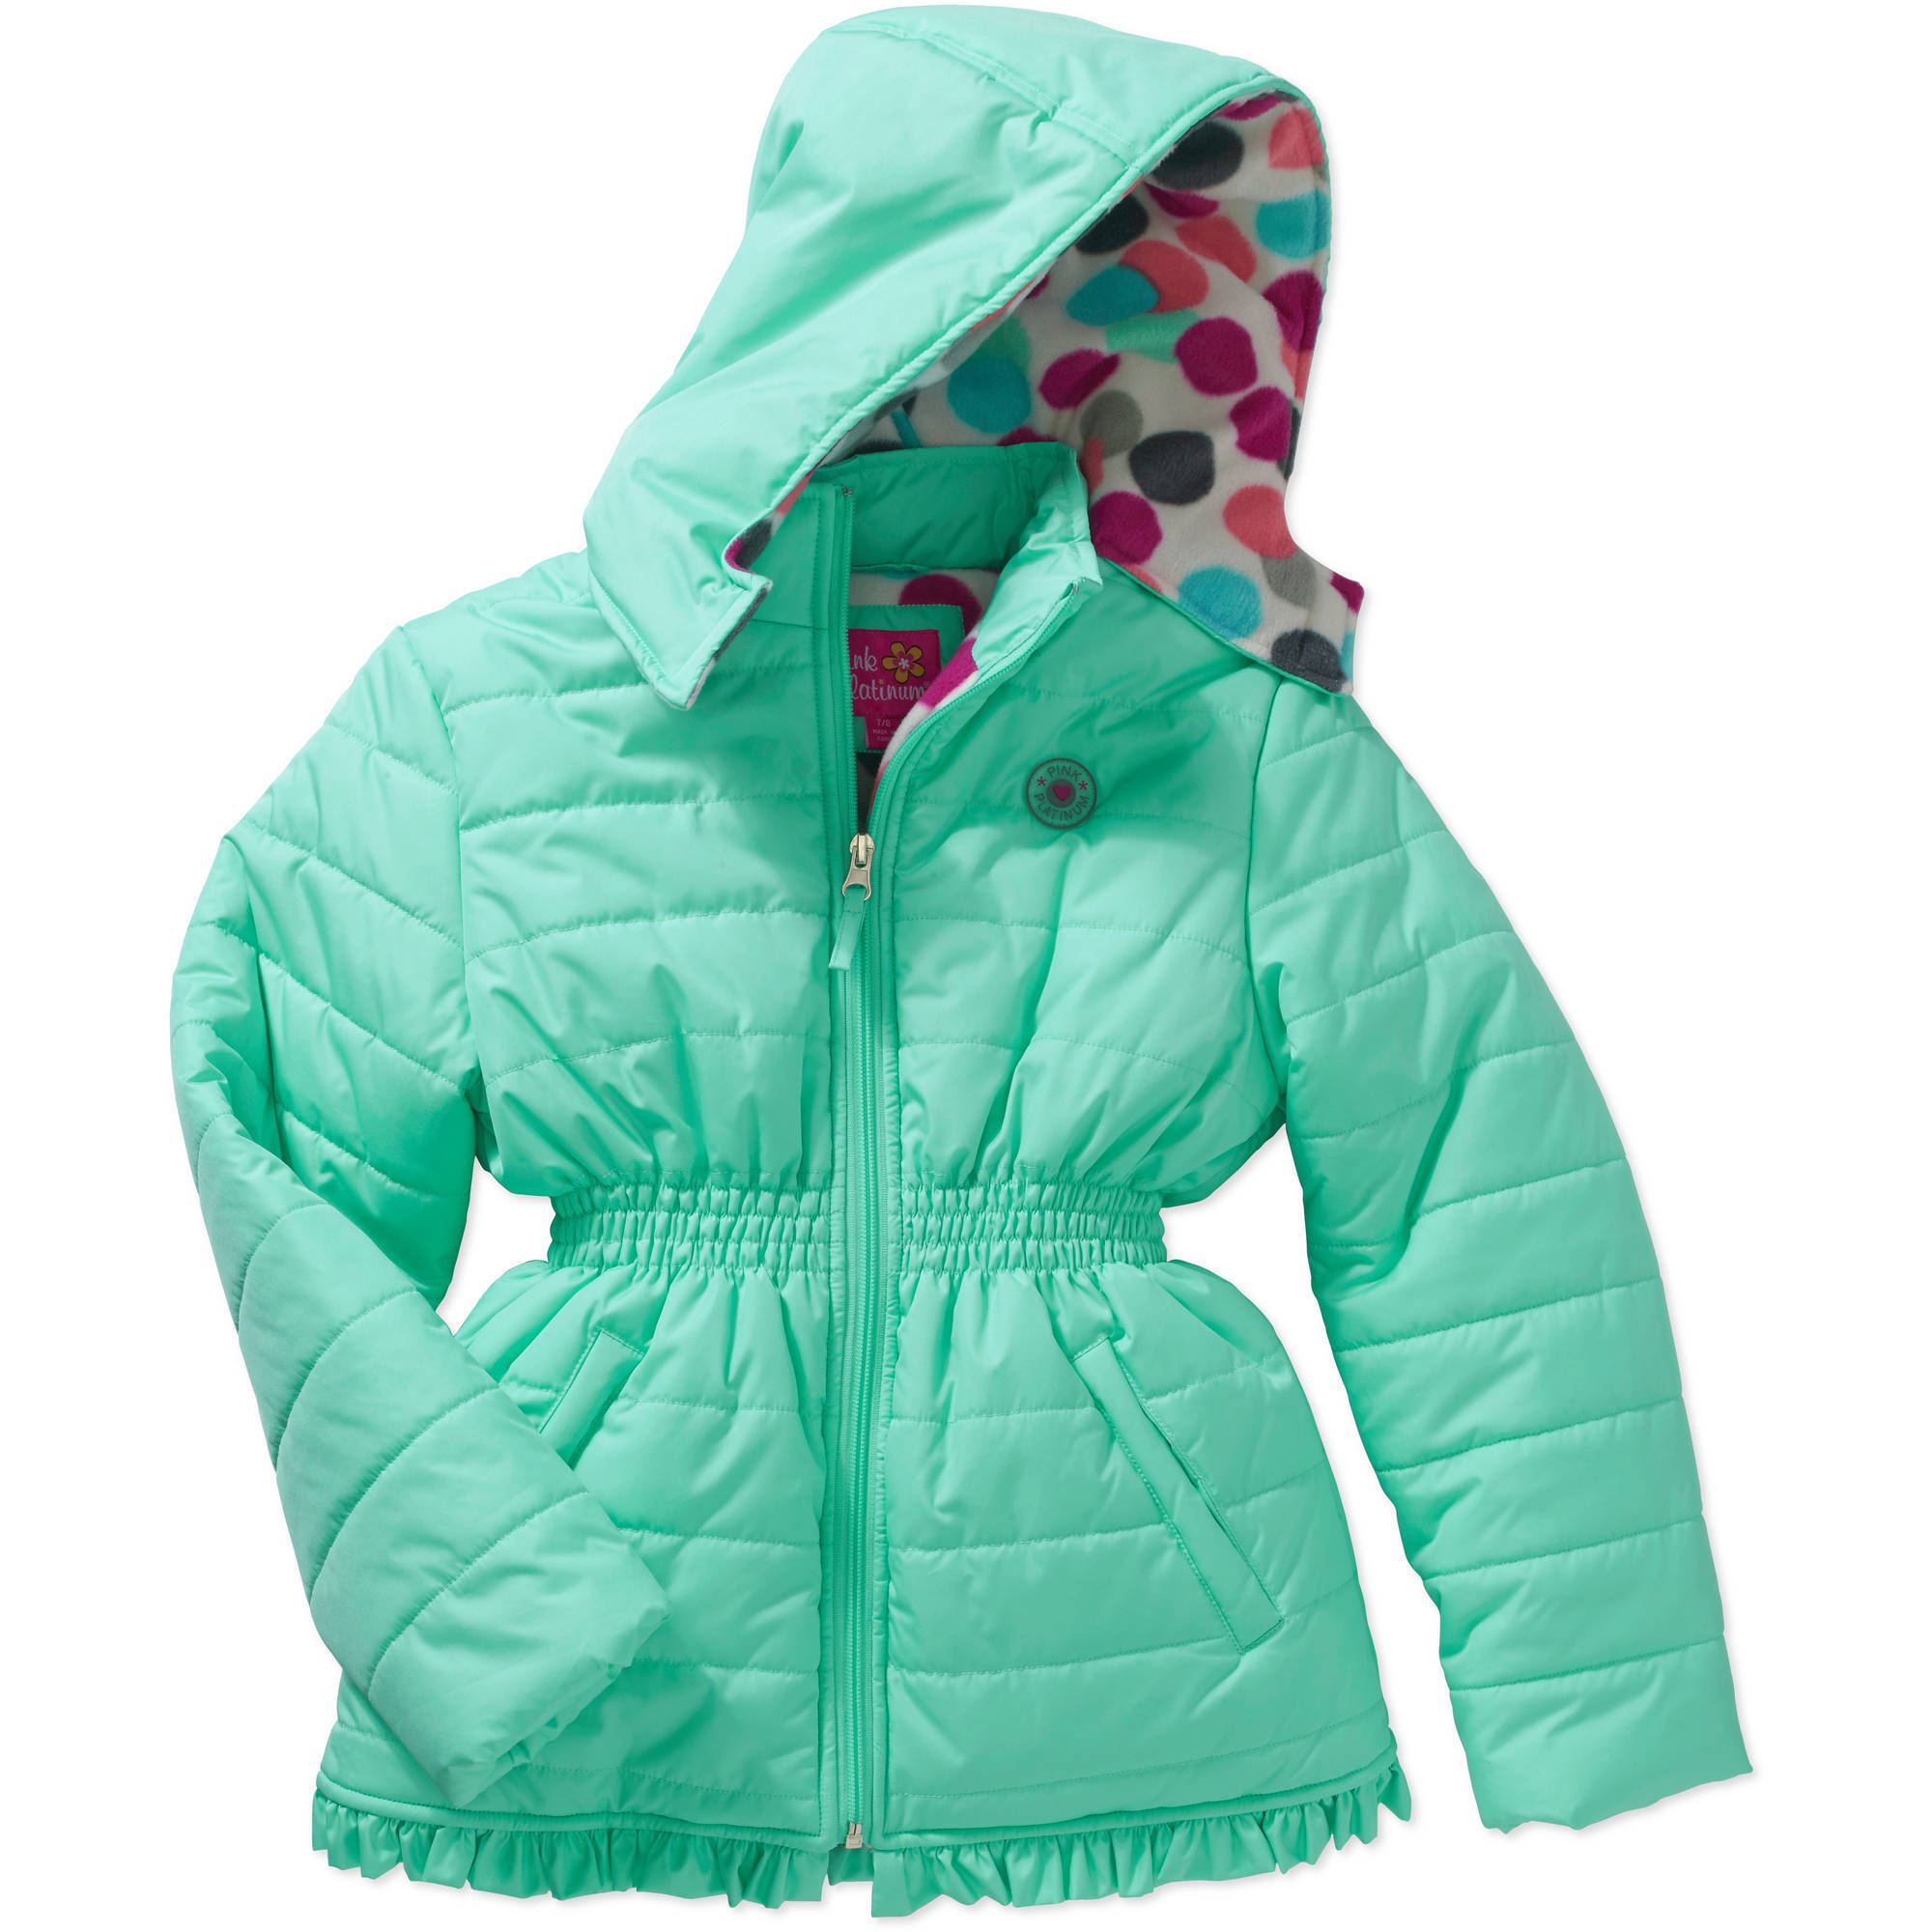 Pink Platinum Girls' Banded Waist Puffer Jacket with Pockets and Hood